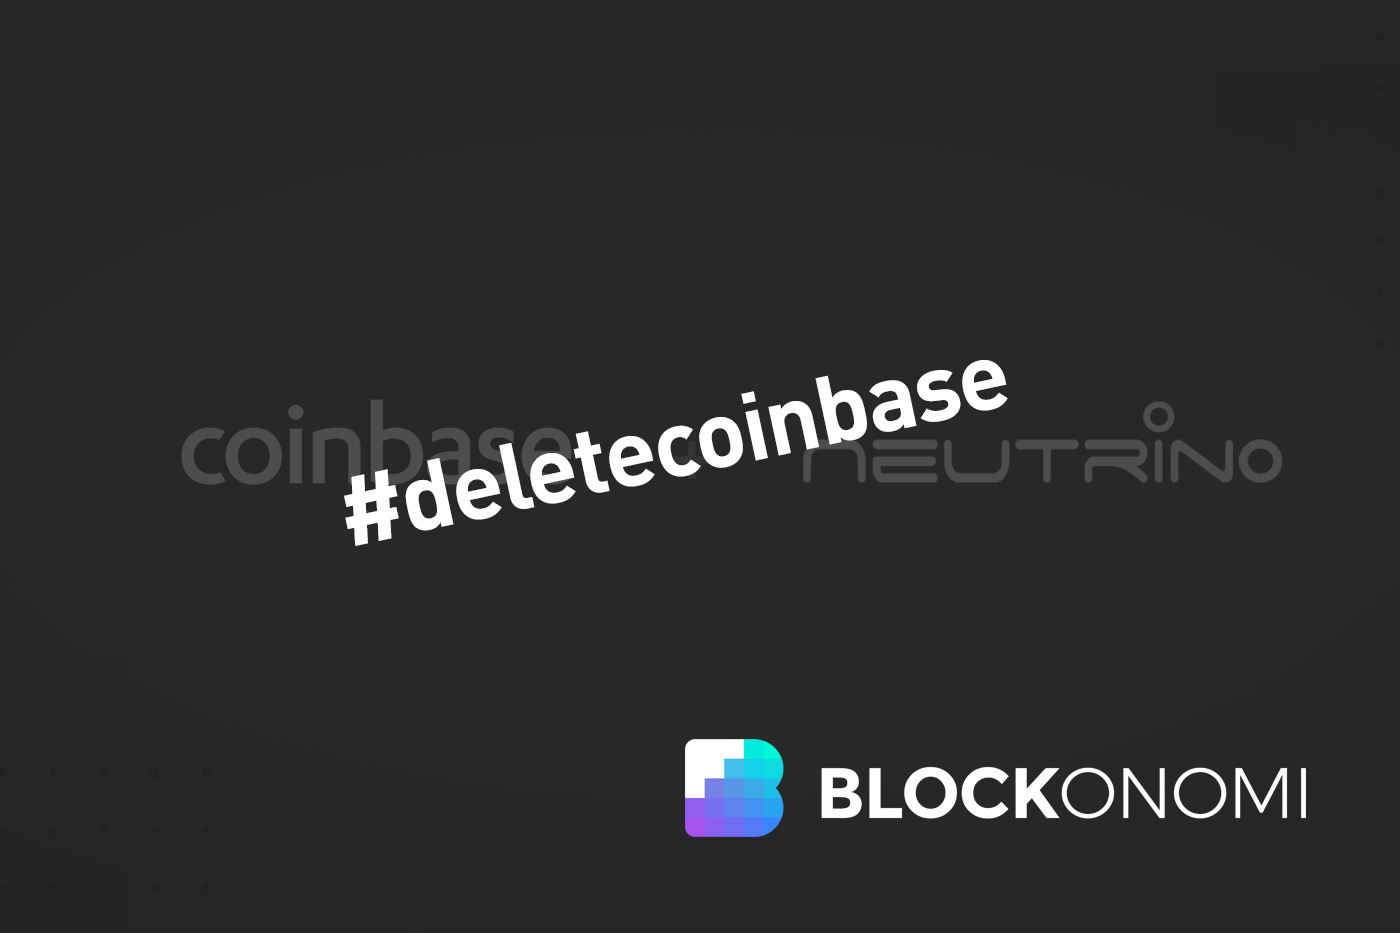 Delete Coinbase Movement: Firm's Analytics Partners Sold Data, Reveals Crypto Exec